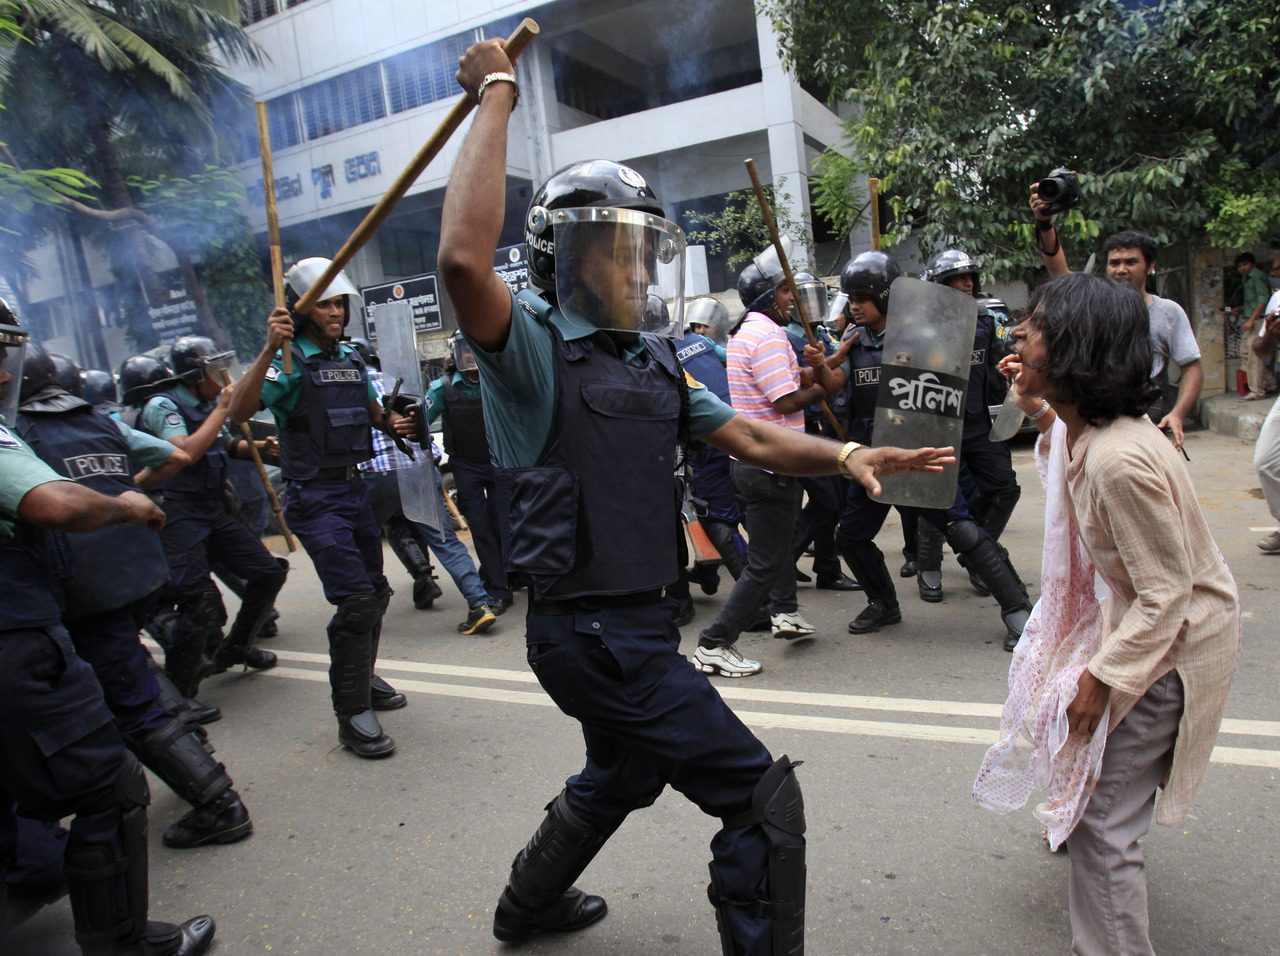 A police officer uses his baton to hit an activist from the National Committee to protect Oil, Gas, Mineral Resources, Power and Ports during a protest against the government in Dhaka September 30, 2012.  Demonstrators demanding the government withdraw the recent power tariff hike marched towards the city's energy ministry on Sunday, but were dispersed by local authorities using batons and tear gas, according to local media. [REUTERS/Andrew Biraj] PHOTOS: Reuters images from the past 24 hours